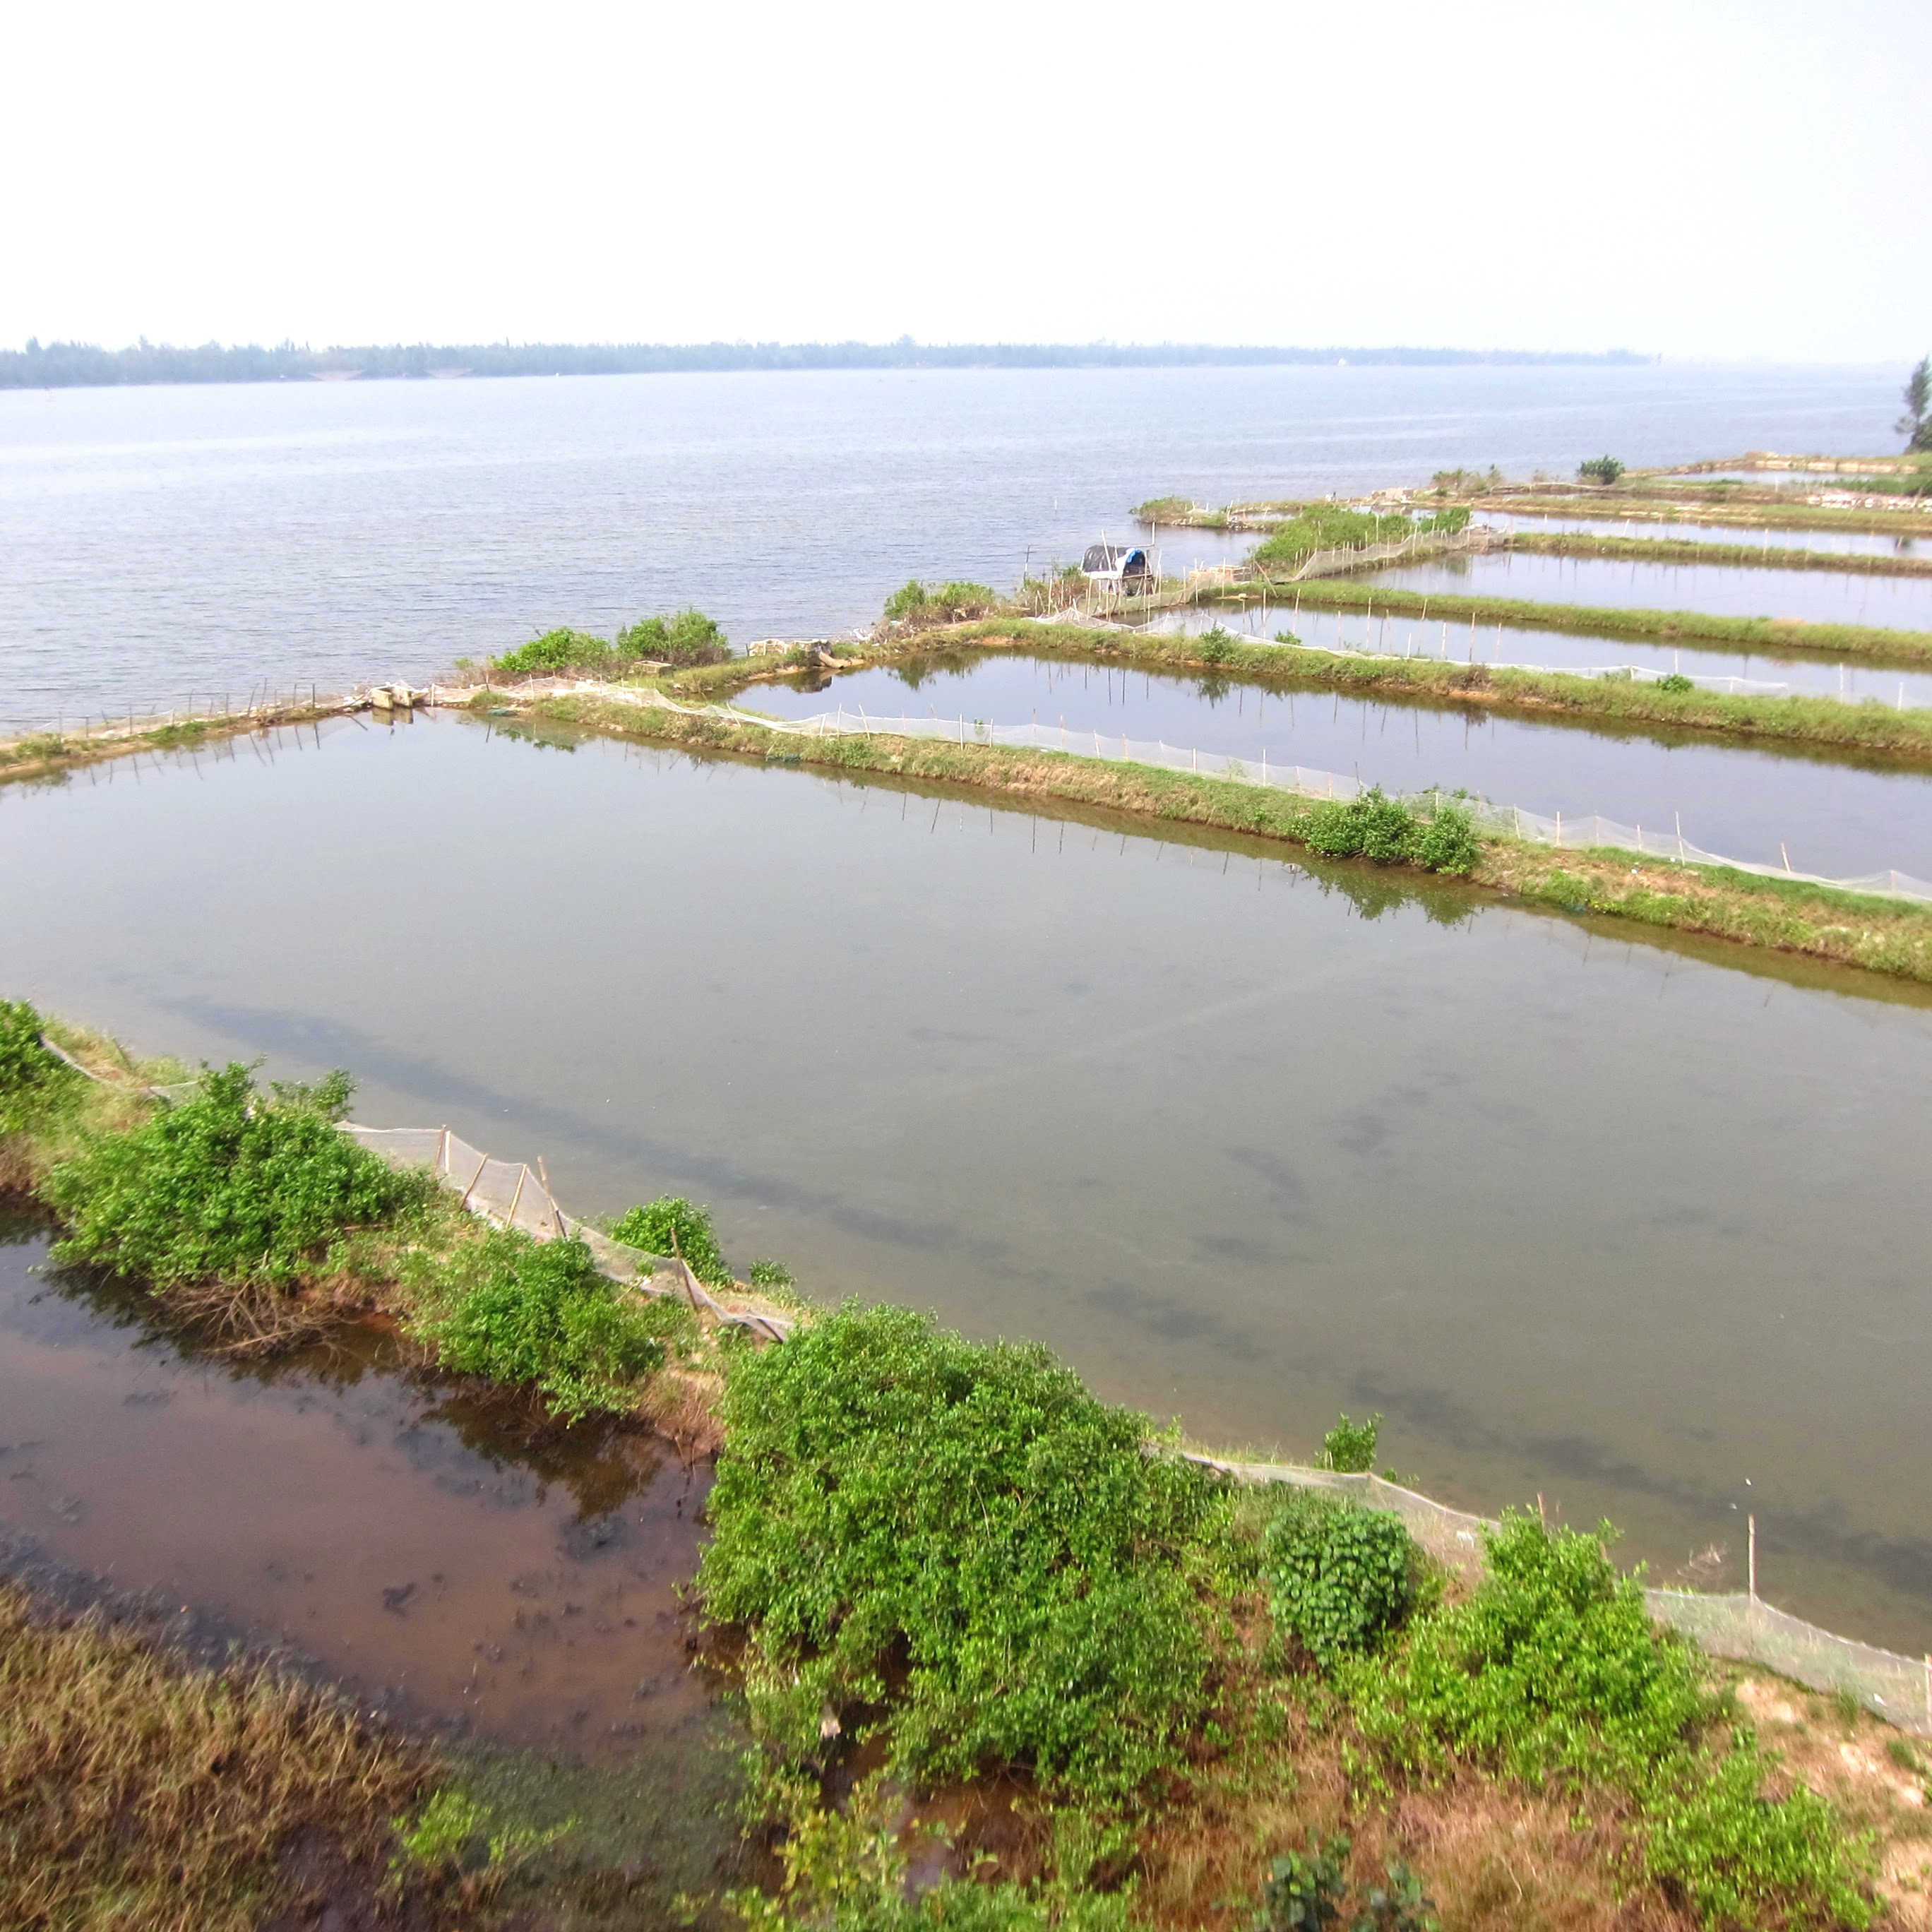 Aquaculture ponds along eastern edge of new development area in Vinh Thanh